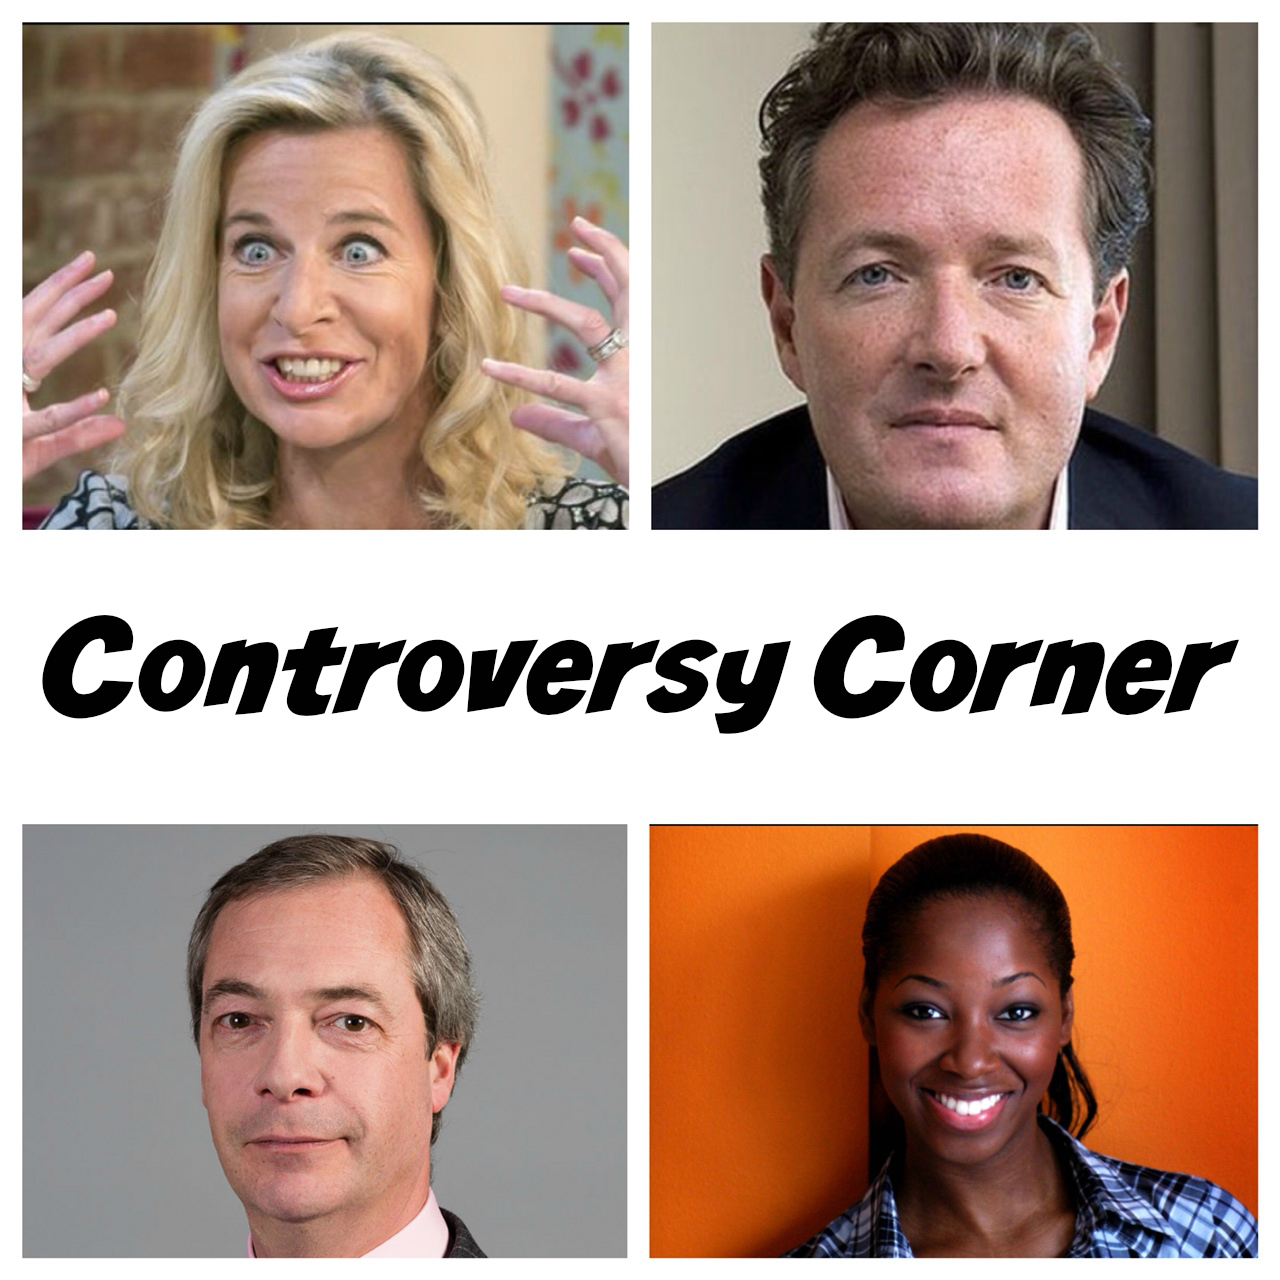 Controversy Corner - Who Cares about Politics??